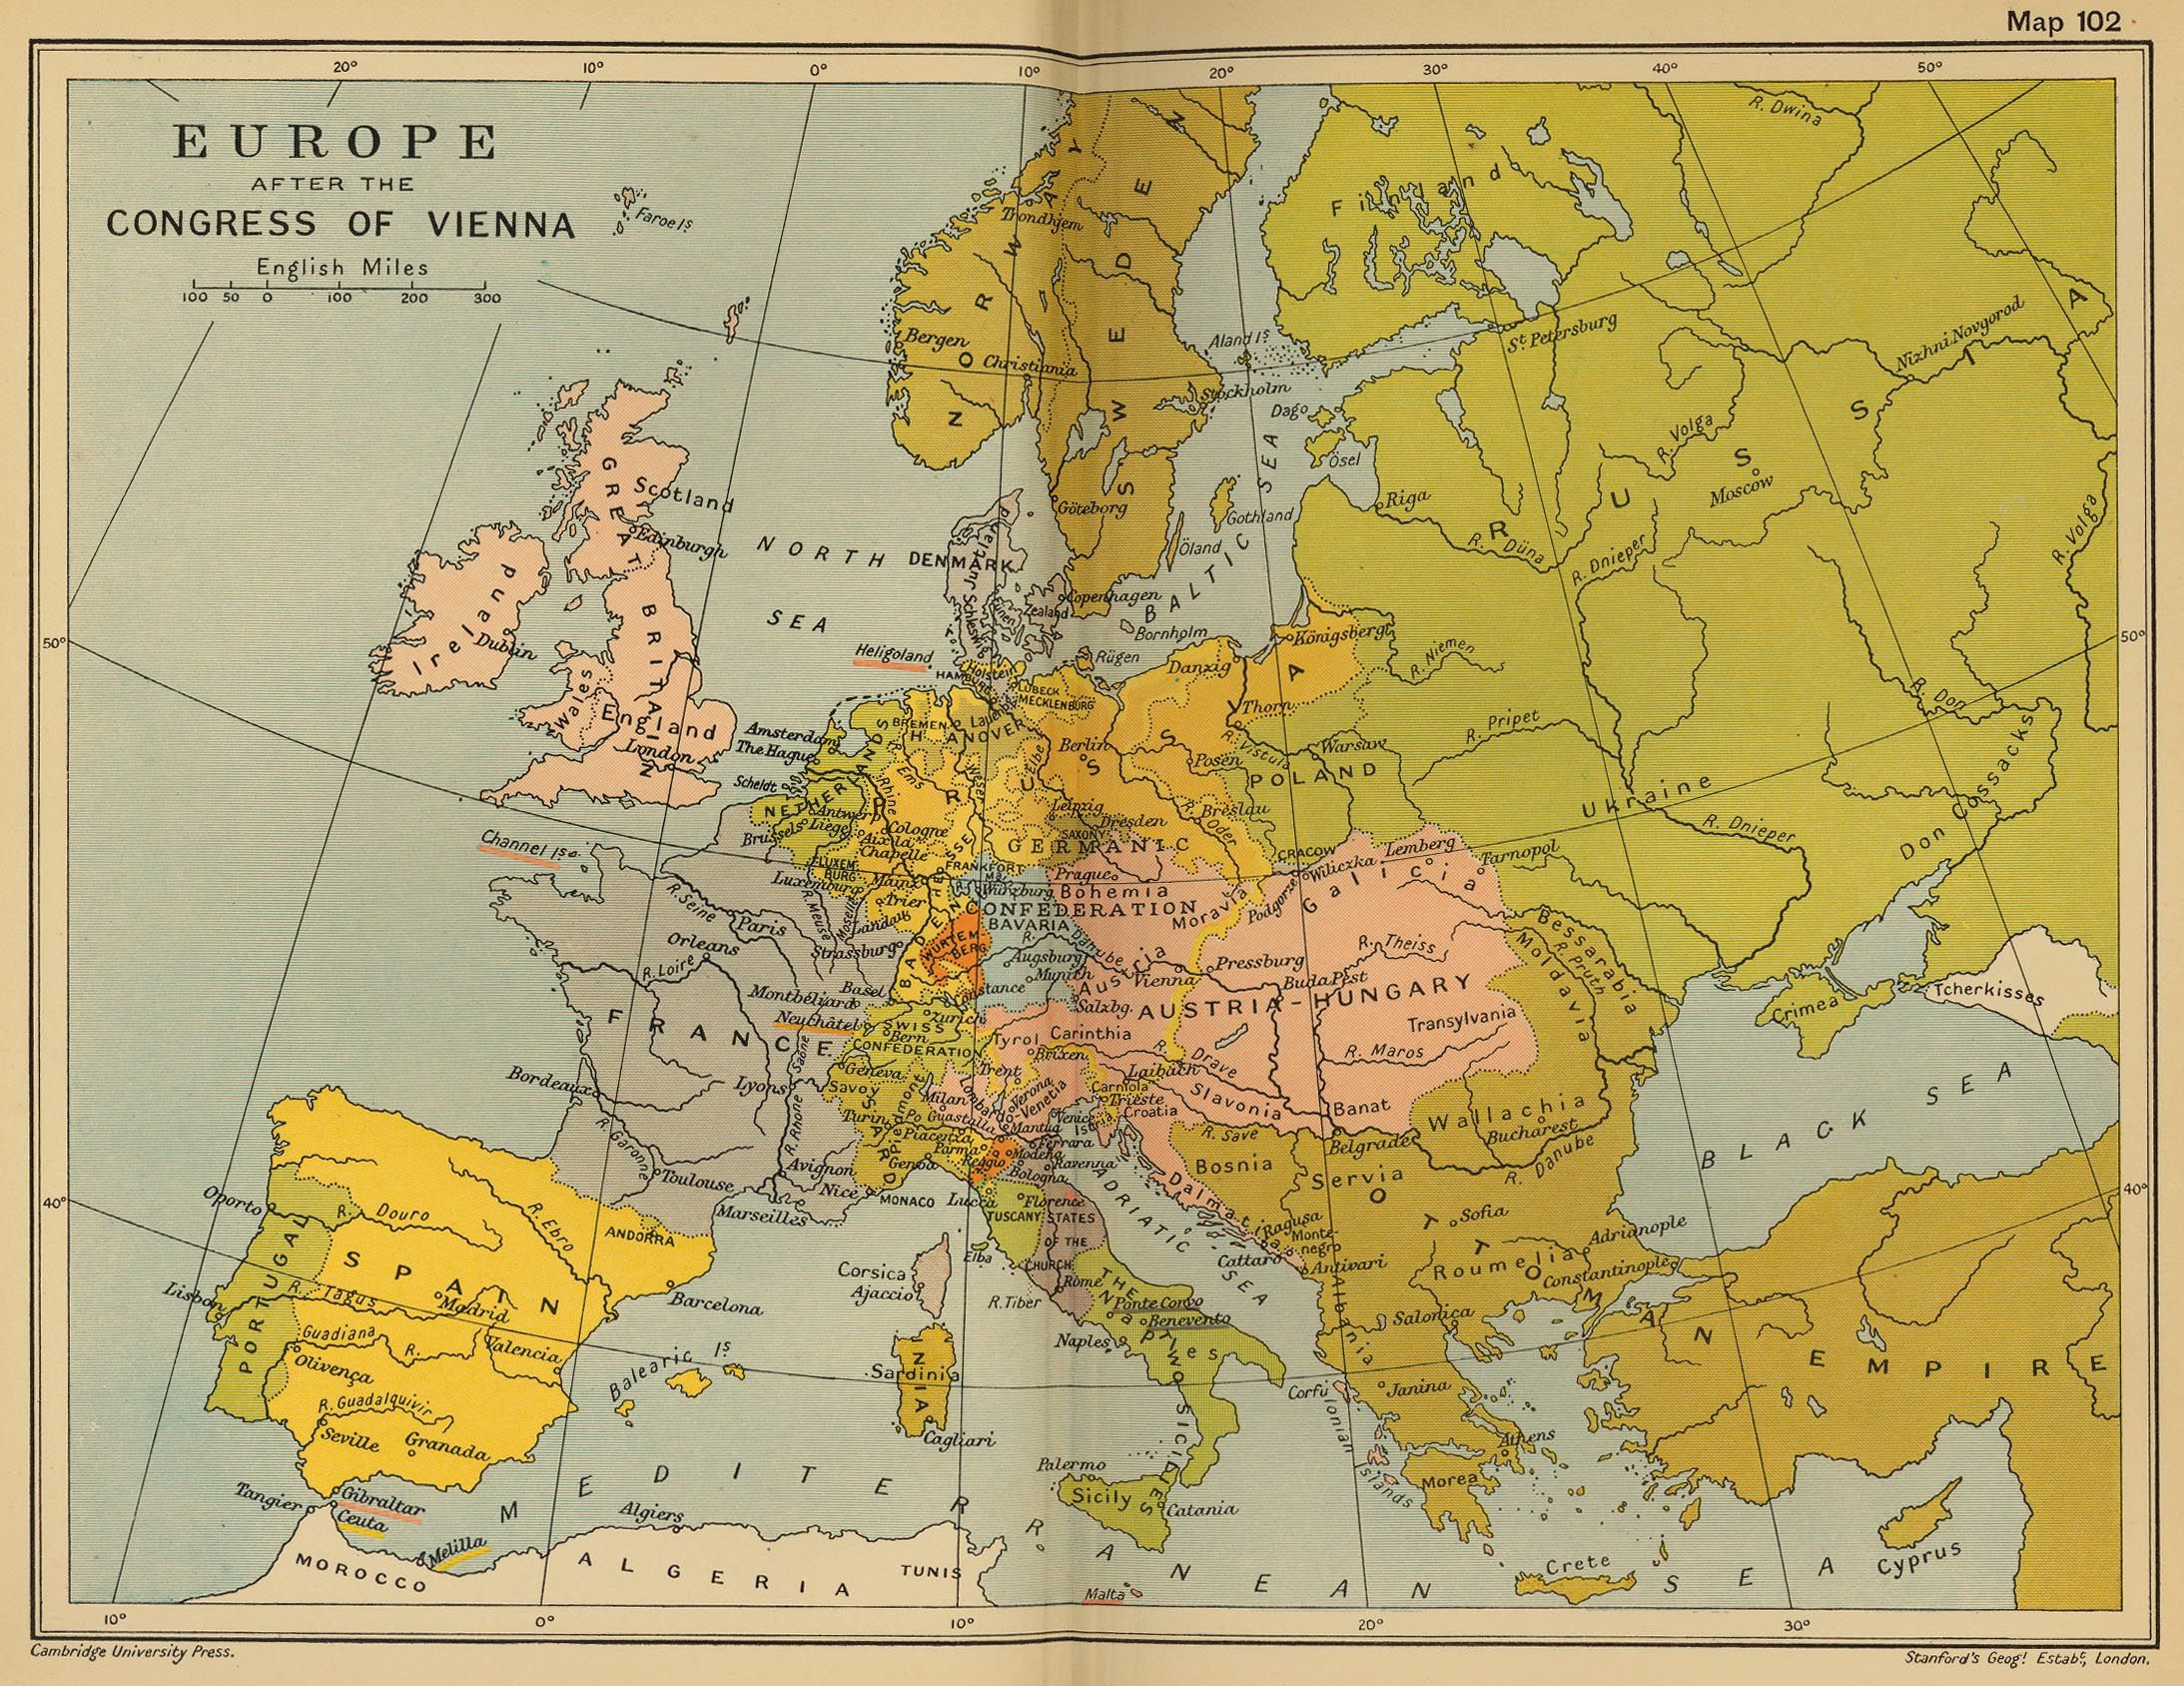 Map of Europe after the Congress of Vienna 1815